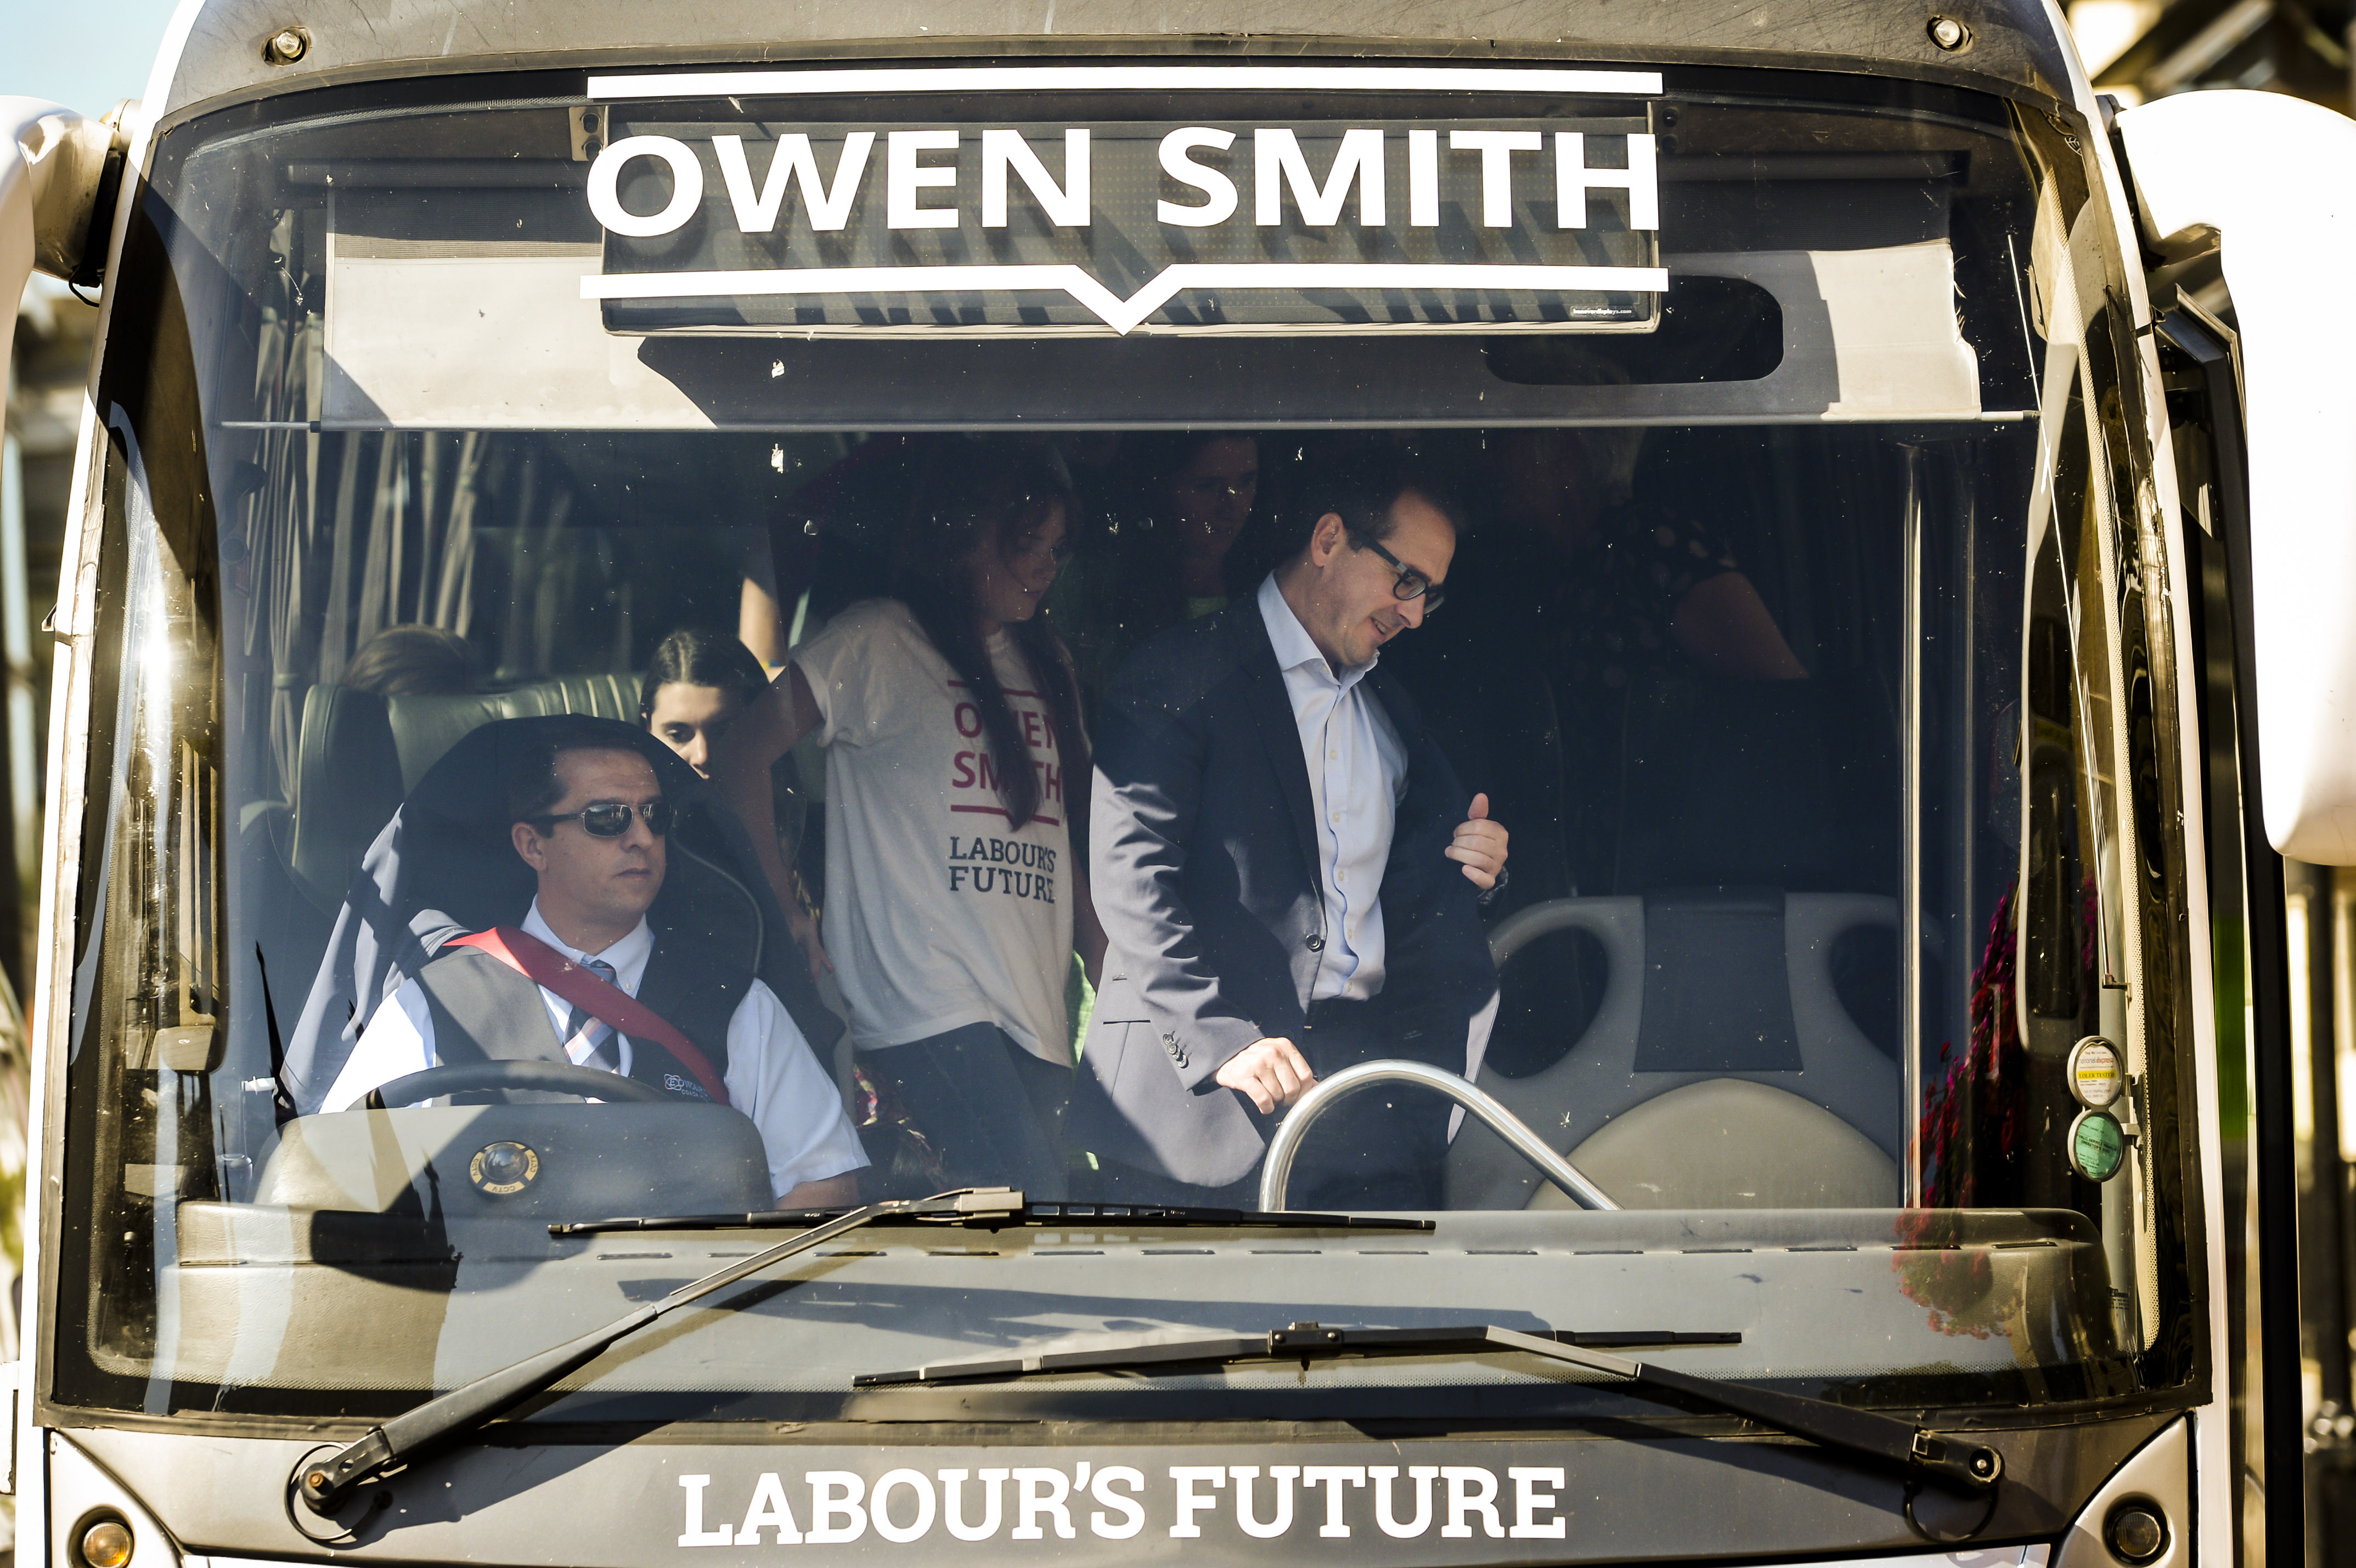 Owen Smith Bus